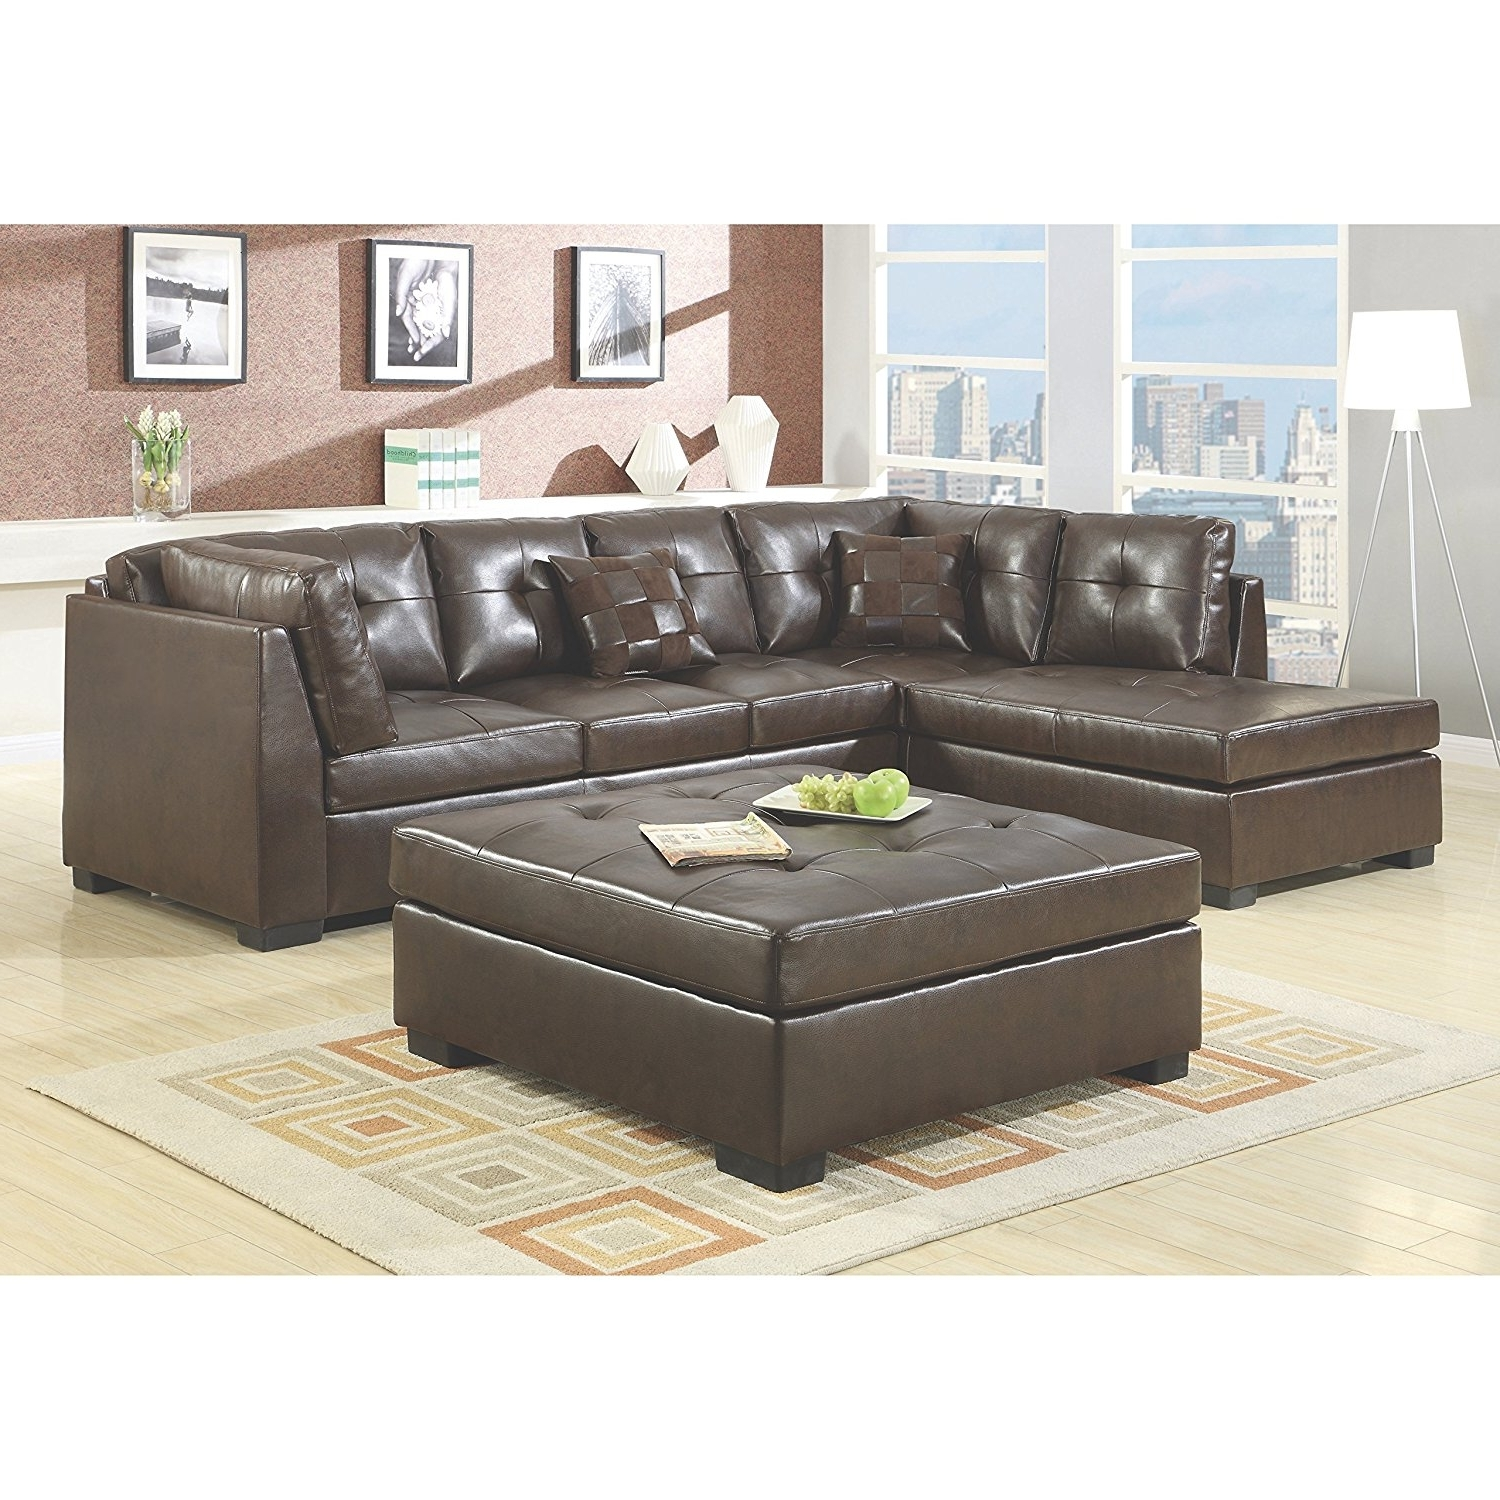 Leather Sectionals With Ottoman Inside Famous Amazon: Coaster Home Furnishings 500686 Casual Sectional Sofa (View 5 of 15)